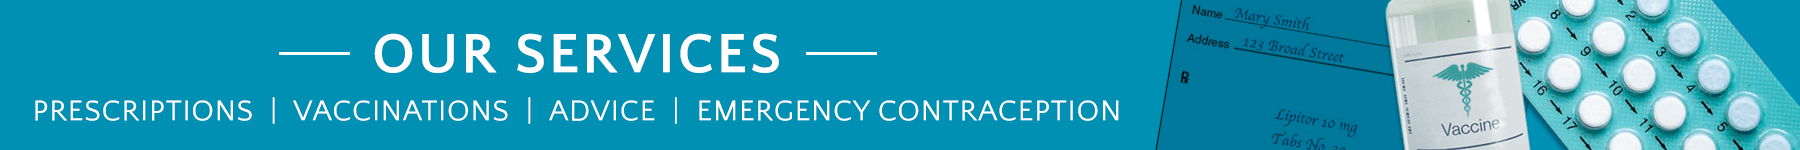 Our services: Prescriptions, vaccinations, advice, emergency contraception